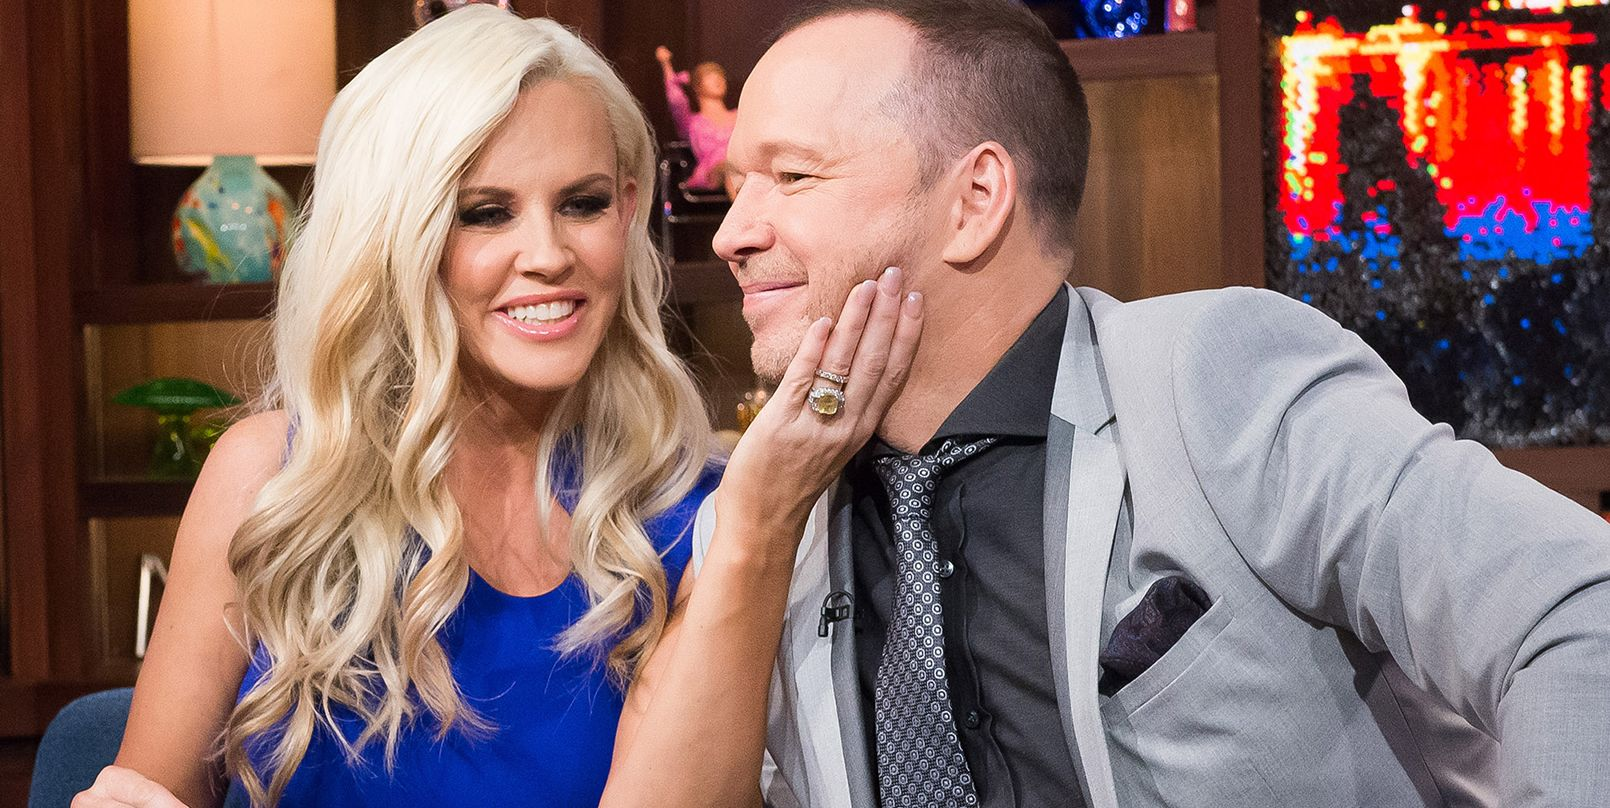 Donnie Wahlberg's Wife Jenny McCarthy Does the Strangest Thing While Watching 'Blue Bloods'